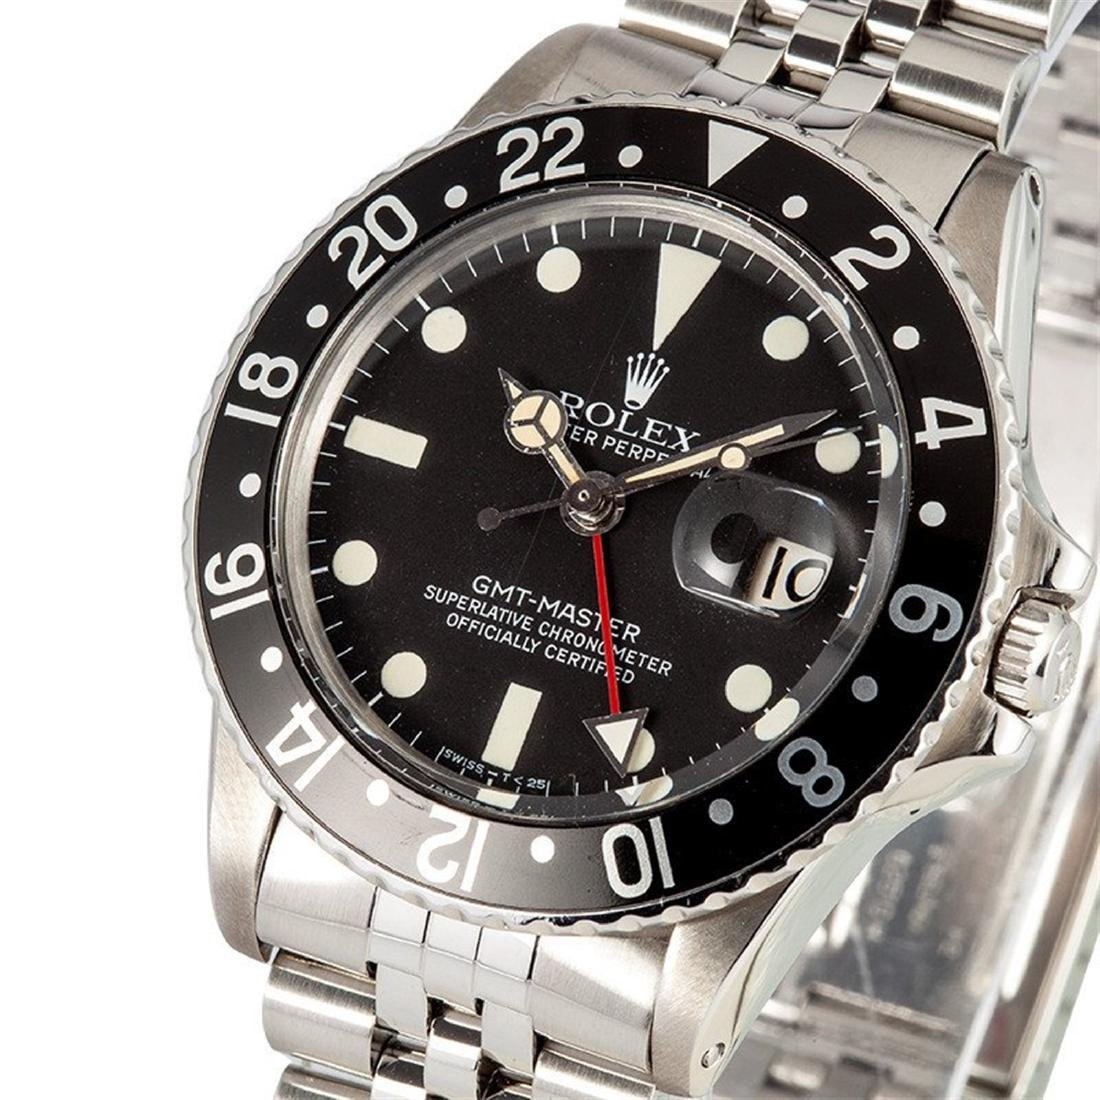 Pre-owned GMT-Master - 2